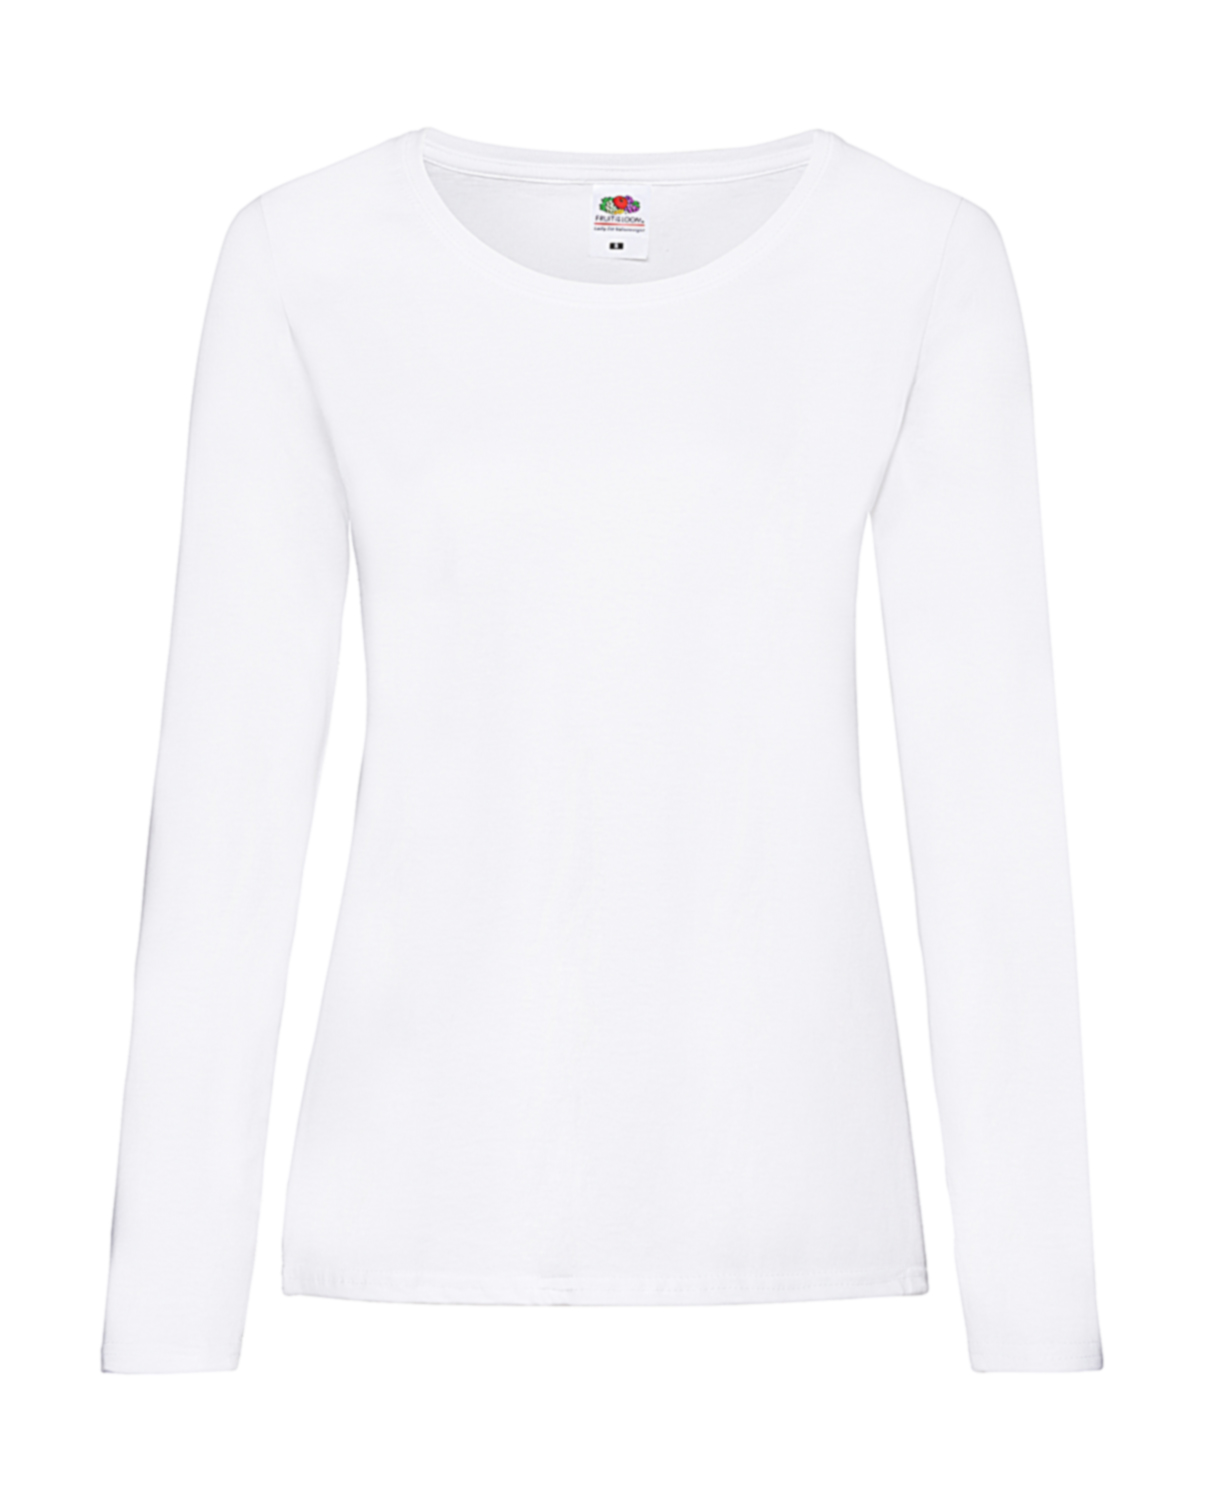 37160629 Fruit of the Loom Valueweight Lady-Fit Long Sleeve T-Shirts – 8Merch